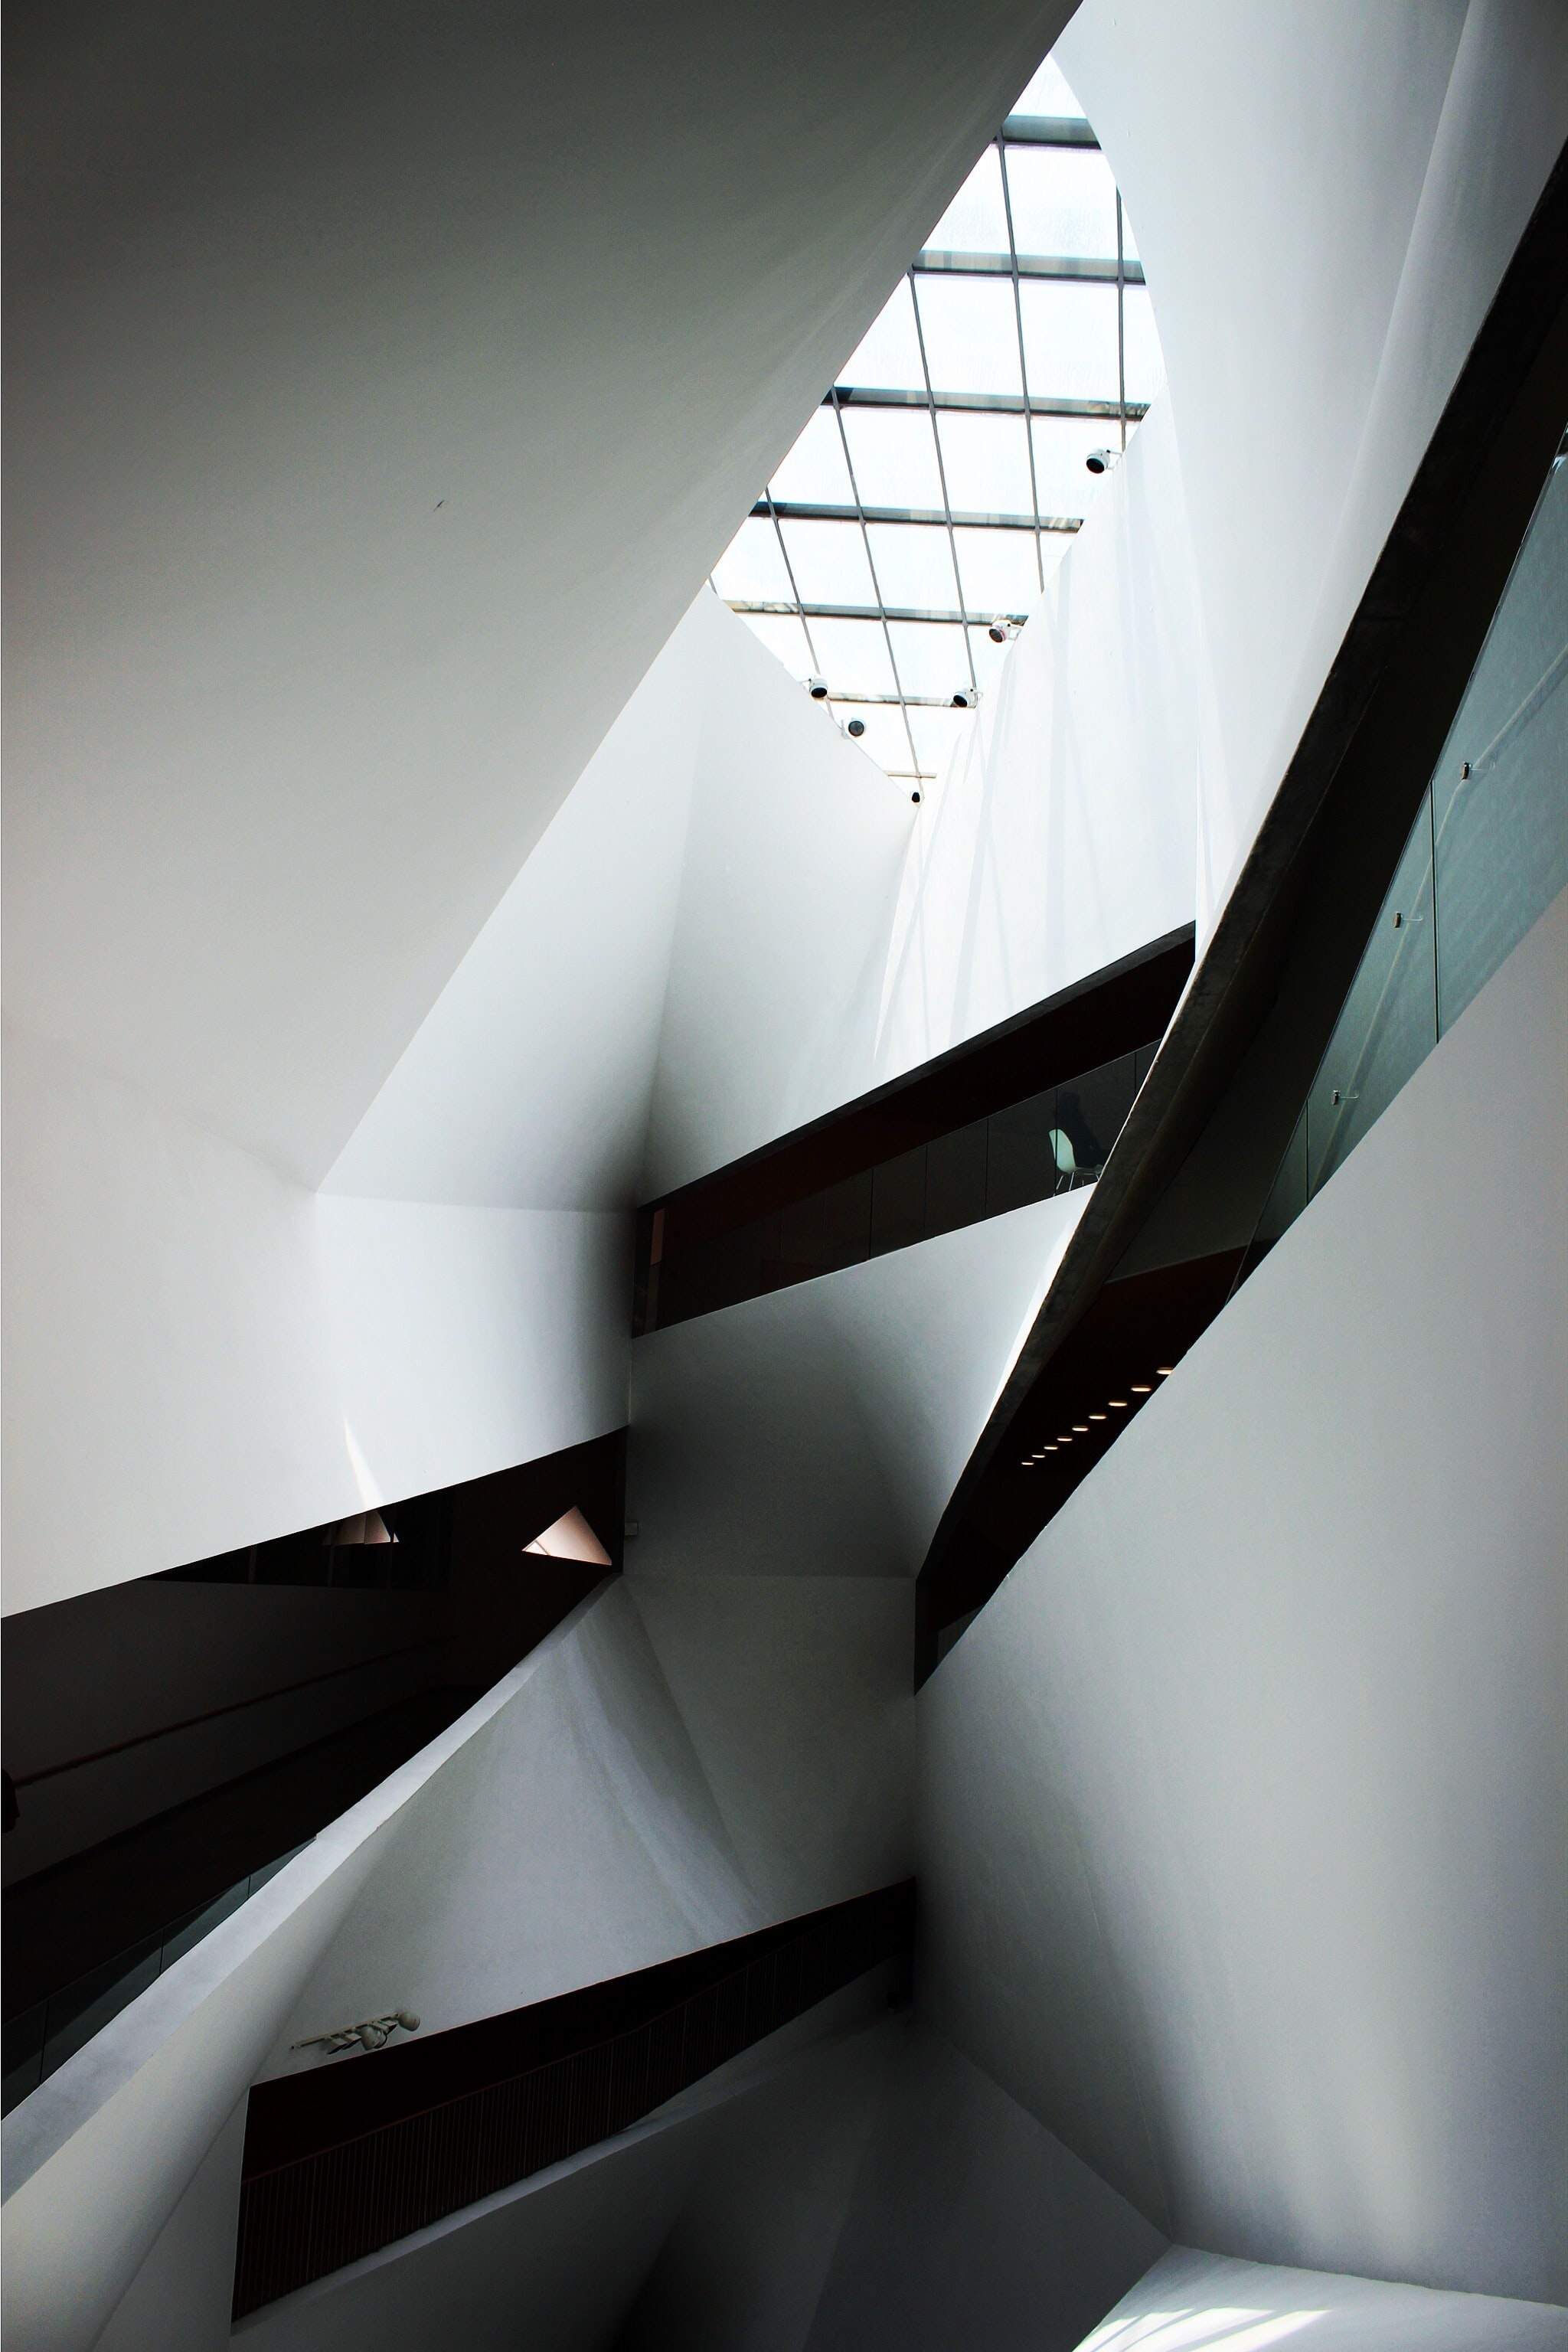 The inside of a black and white building with a unique architectural design